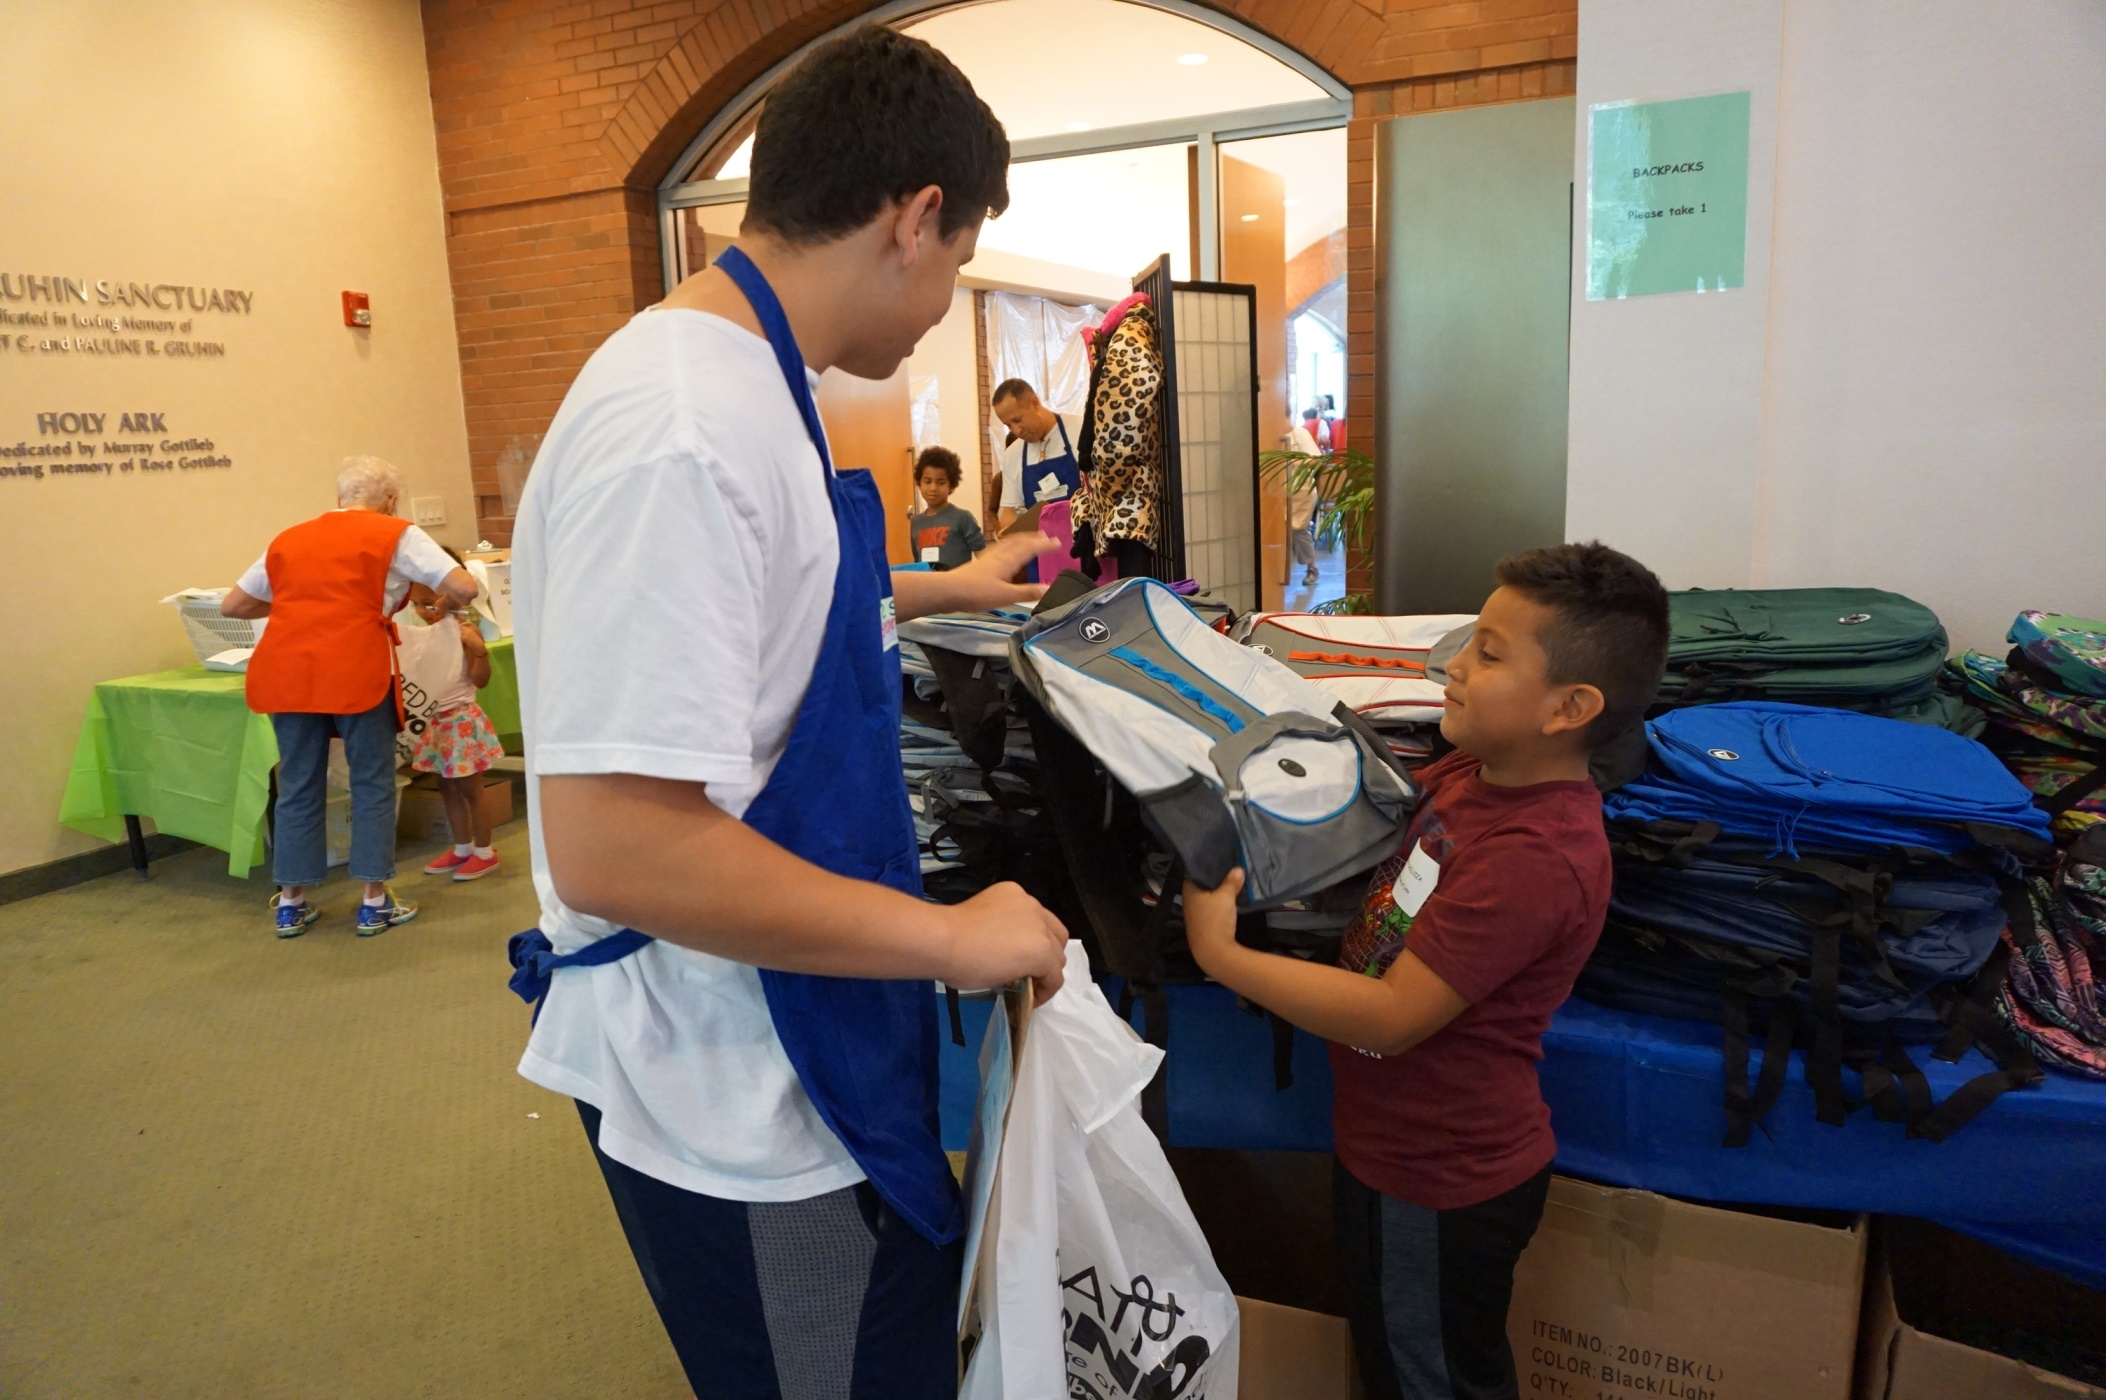 Hundreds Of Students Go On Free Back-To-School Shopping Spree